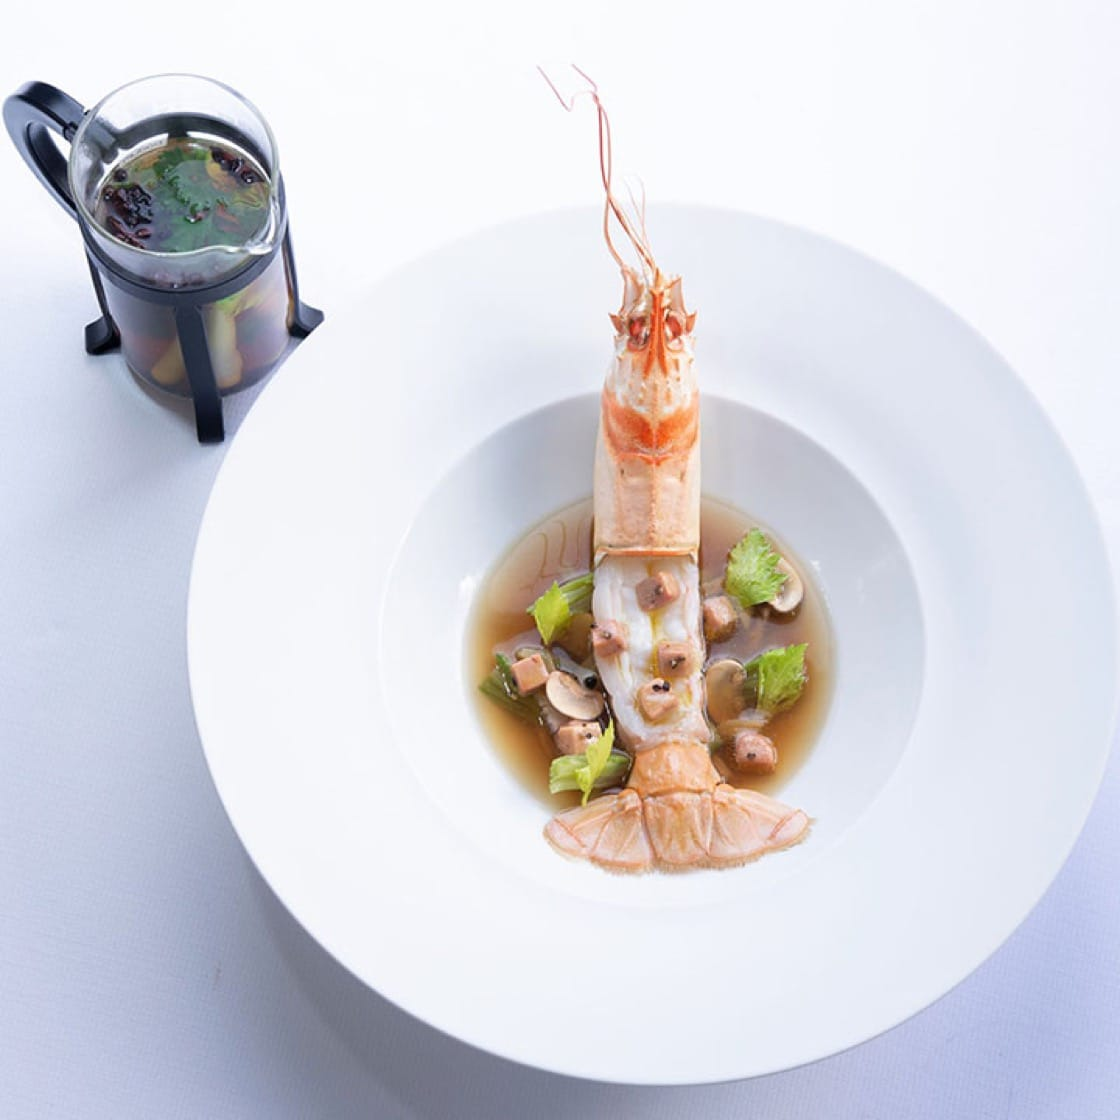 Raw giant langoustine with foie gras and seasonal vegetables. (Photo courtesy of Laurence Mouton.)